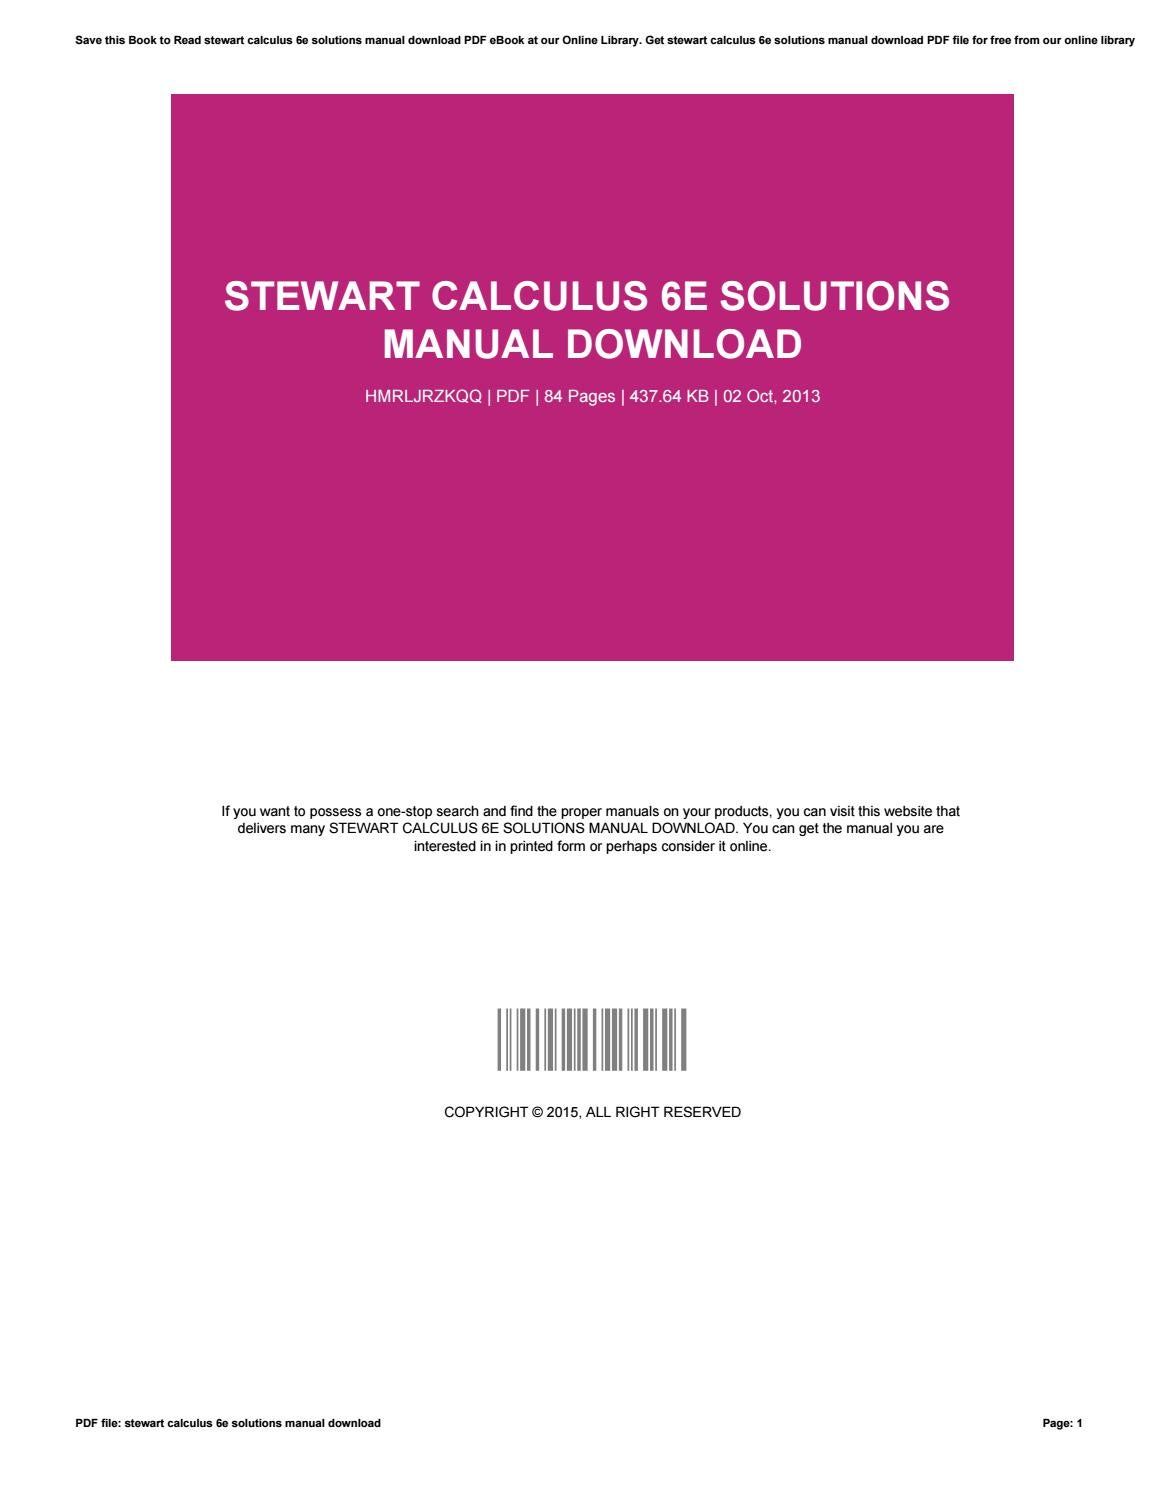 stewart calculus solutions manual pdf